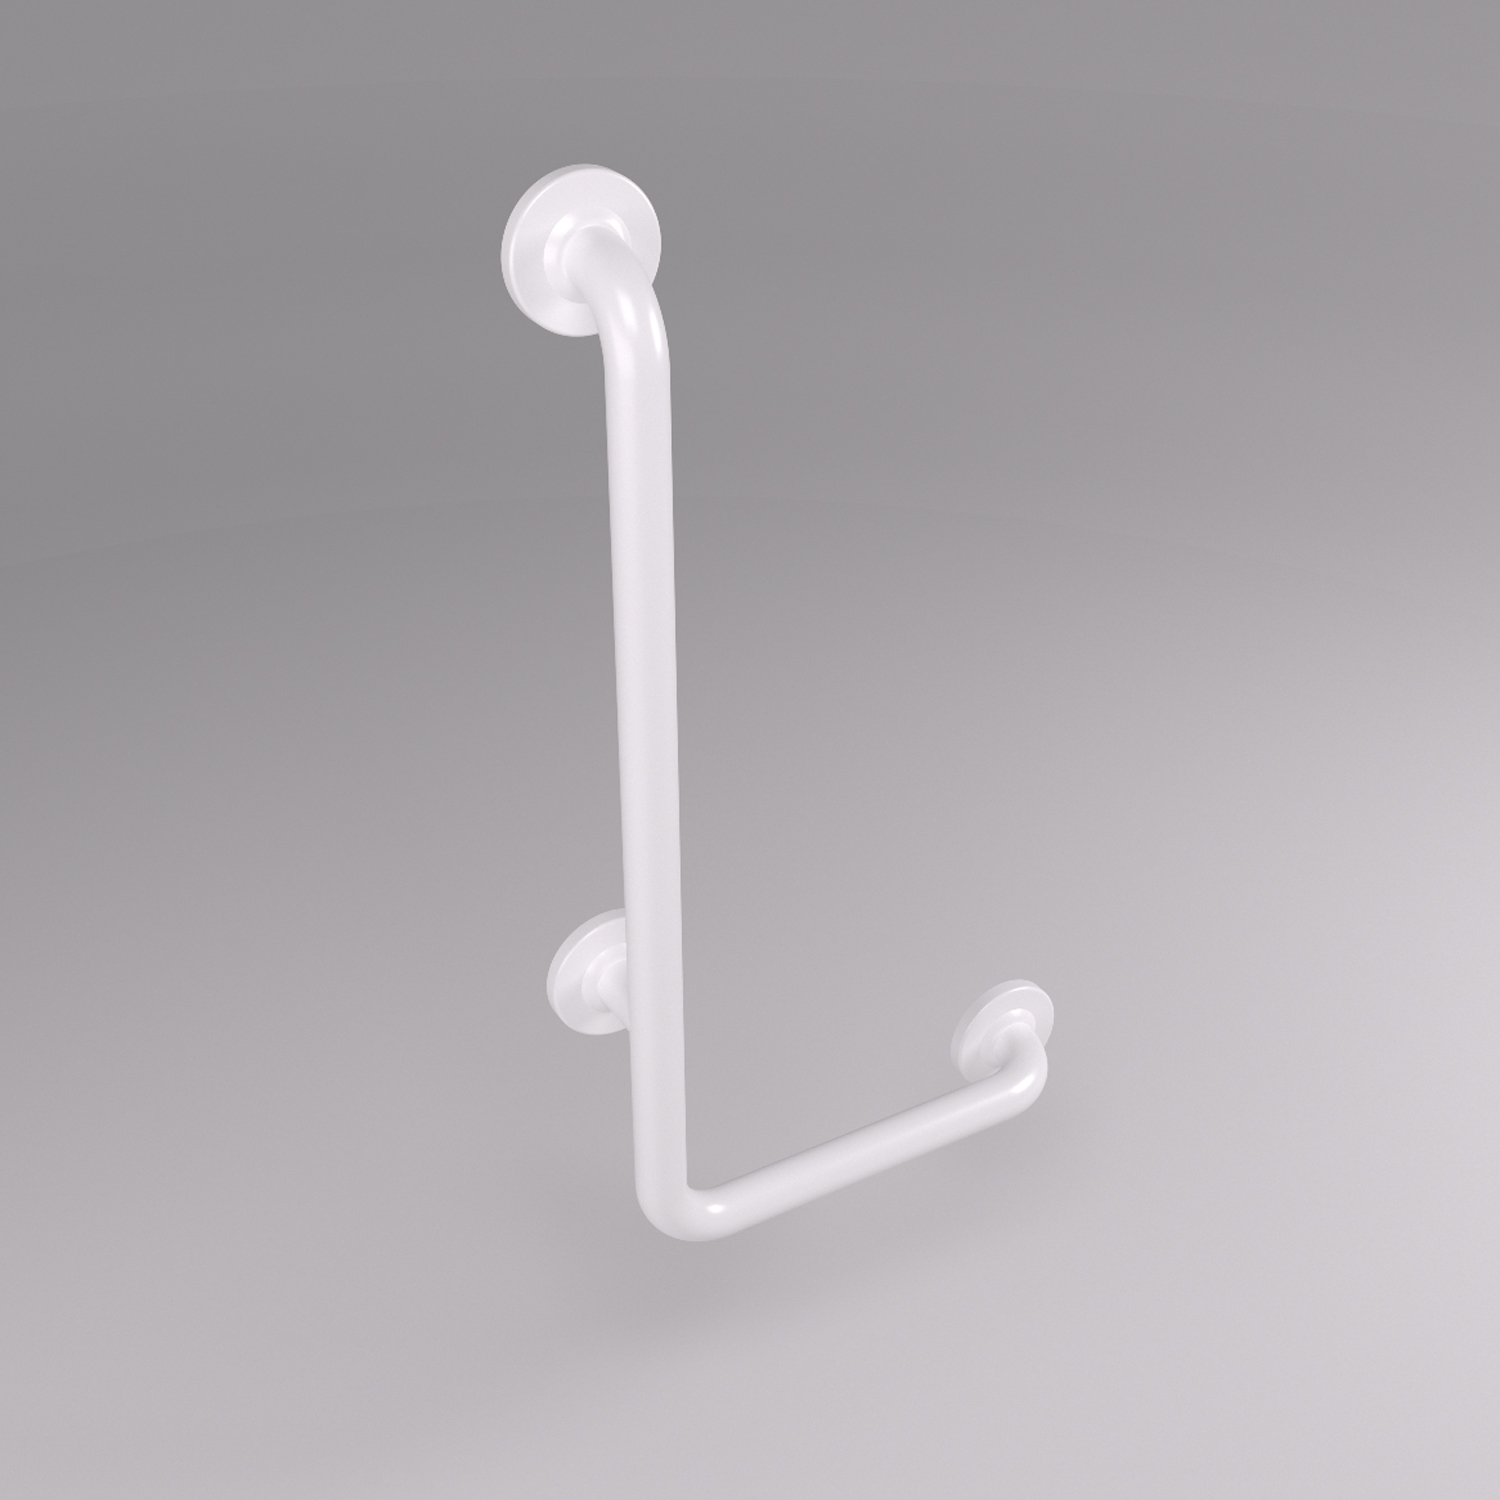 L-shaped vinyl grab bar